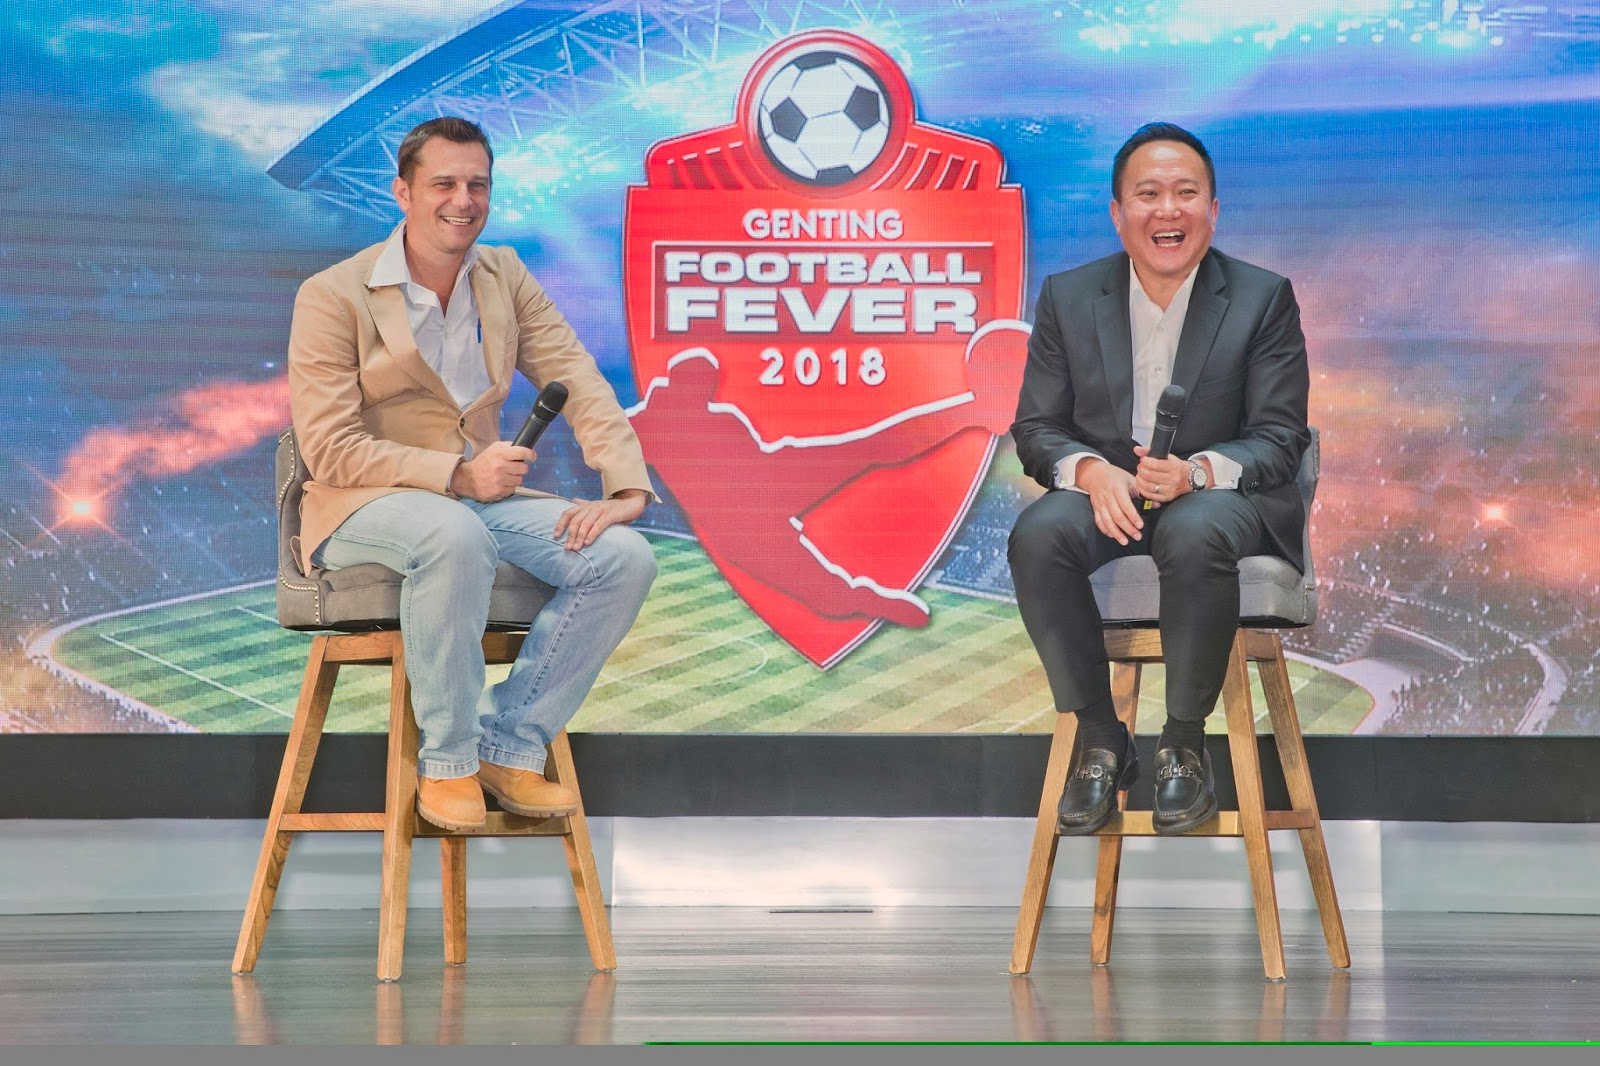 RESORTS WORLD GENTING, FIFA WORLD CUP 2018